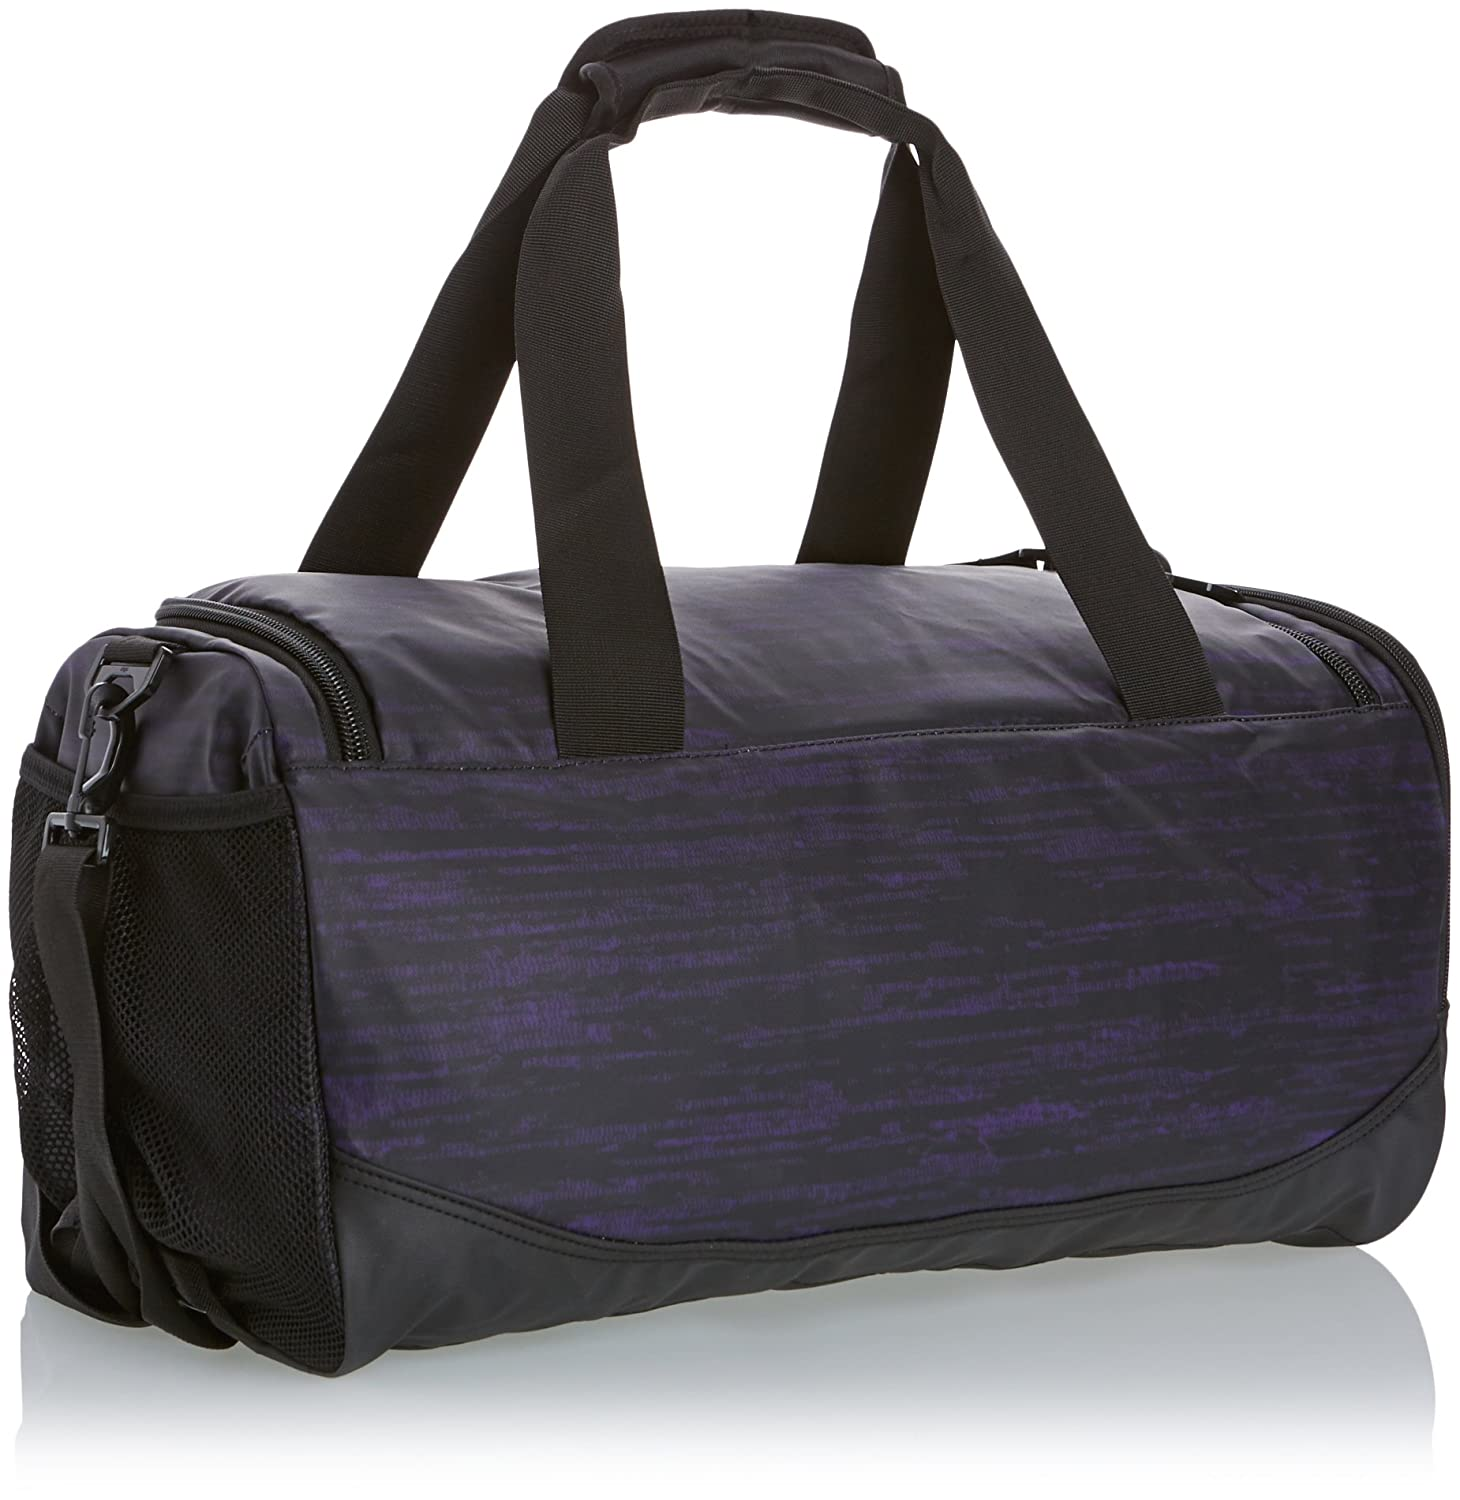 1b632ed6a8d4 Amazon.com  New Nike Team Training Max Air Graphic Small Duffel Bag Court  Purple Black Hyper Grape  Shoes